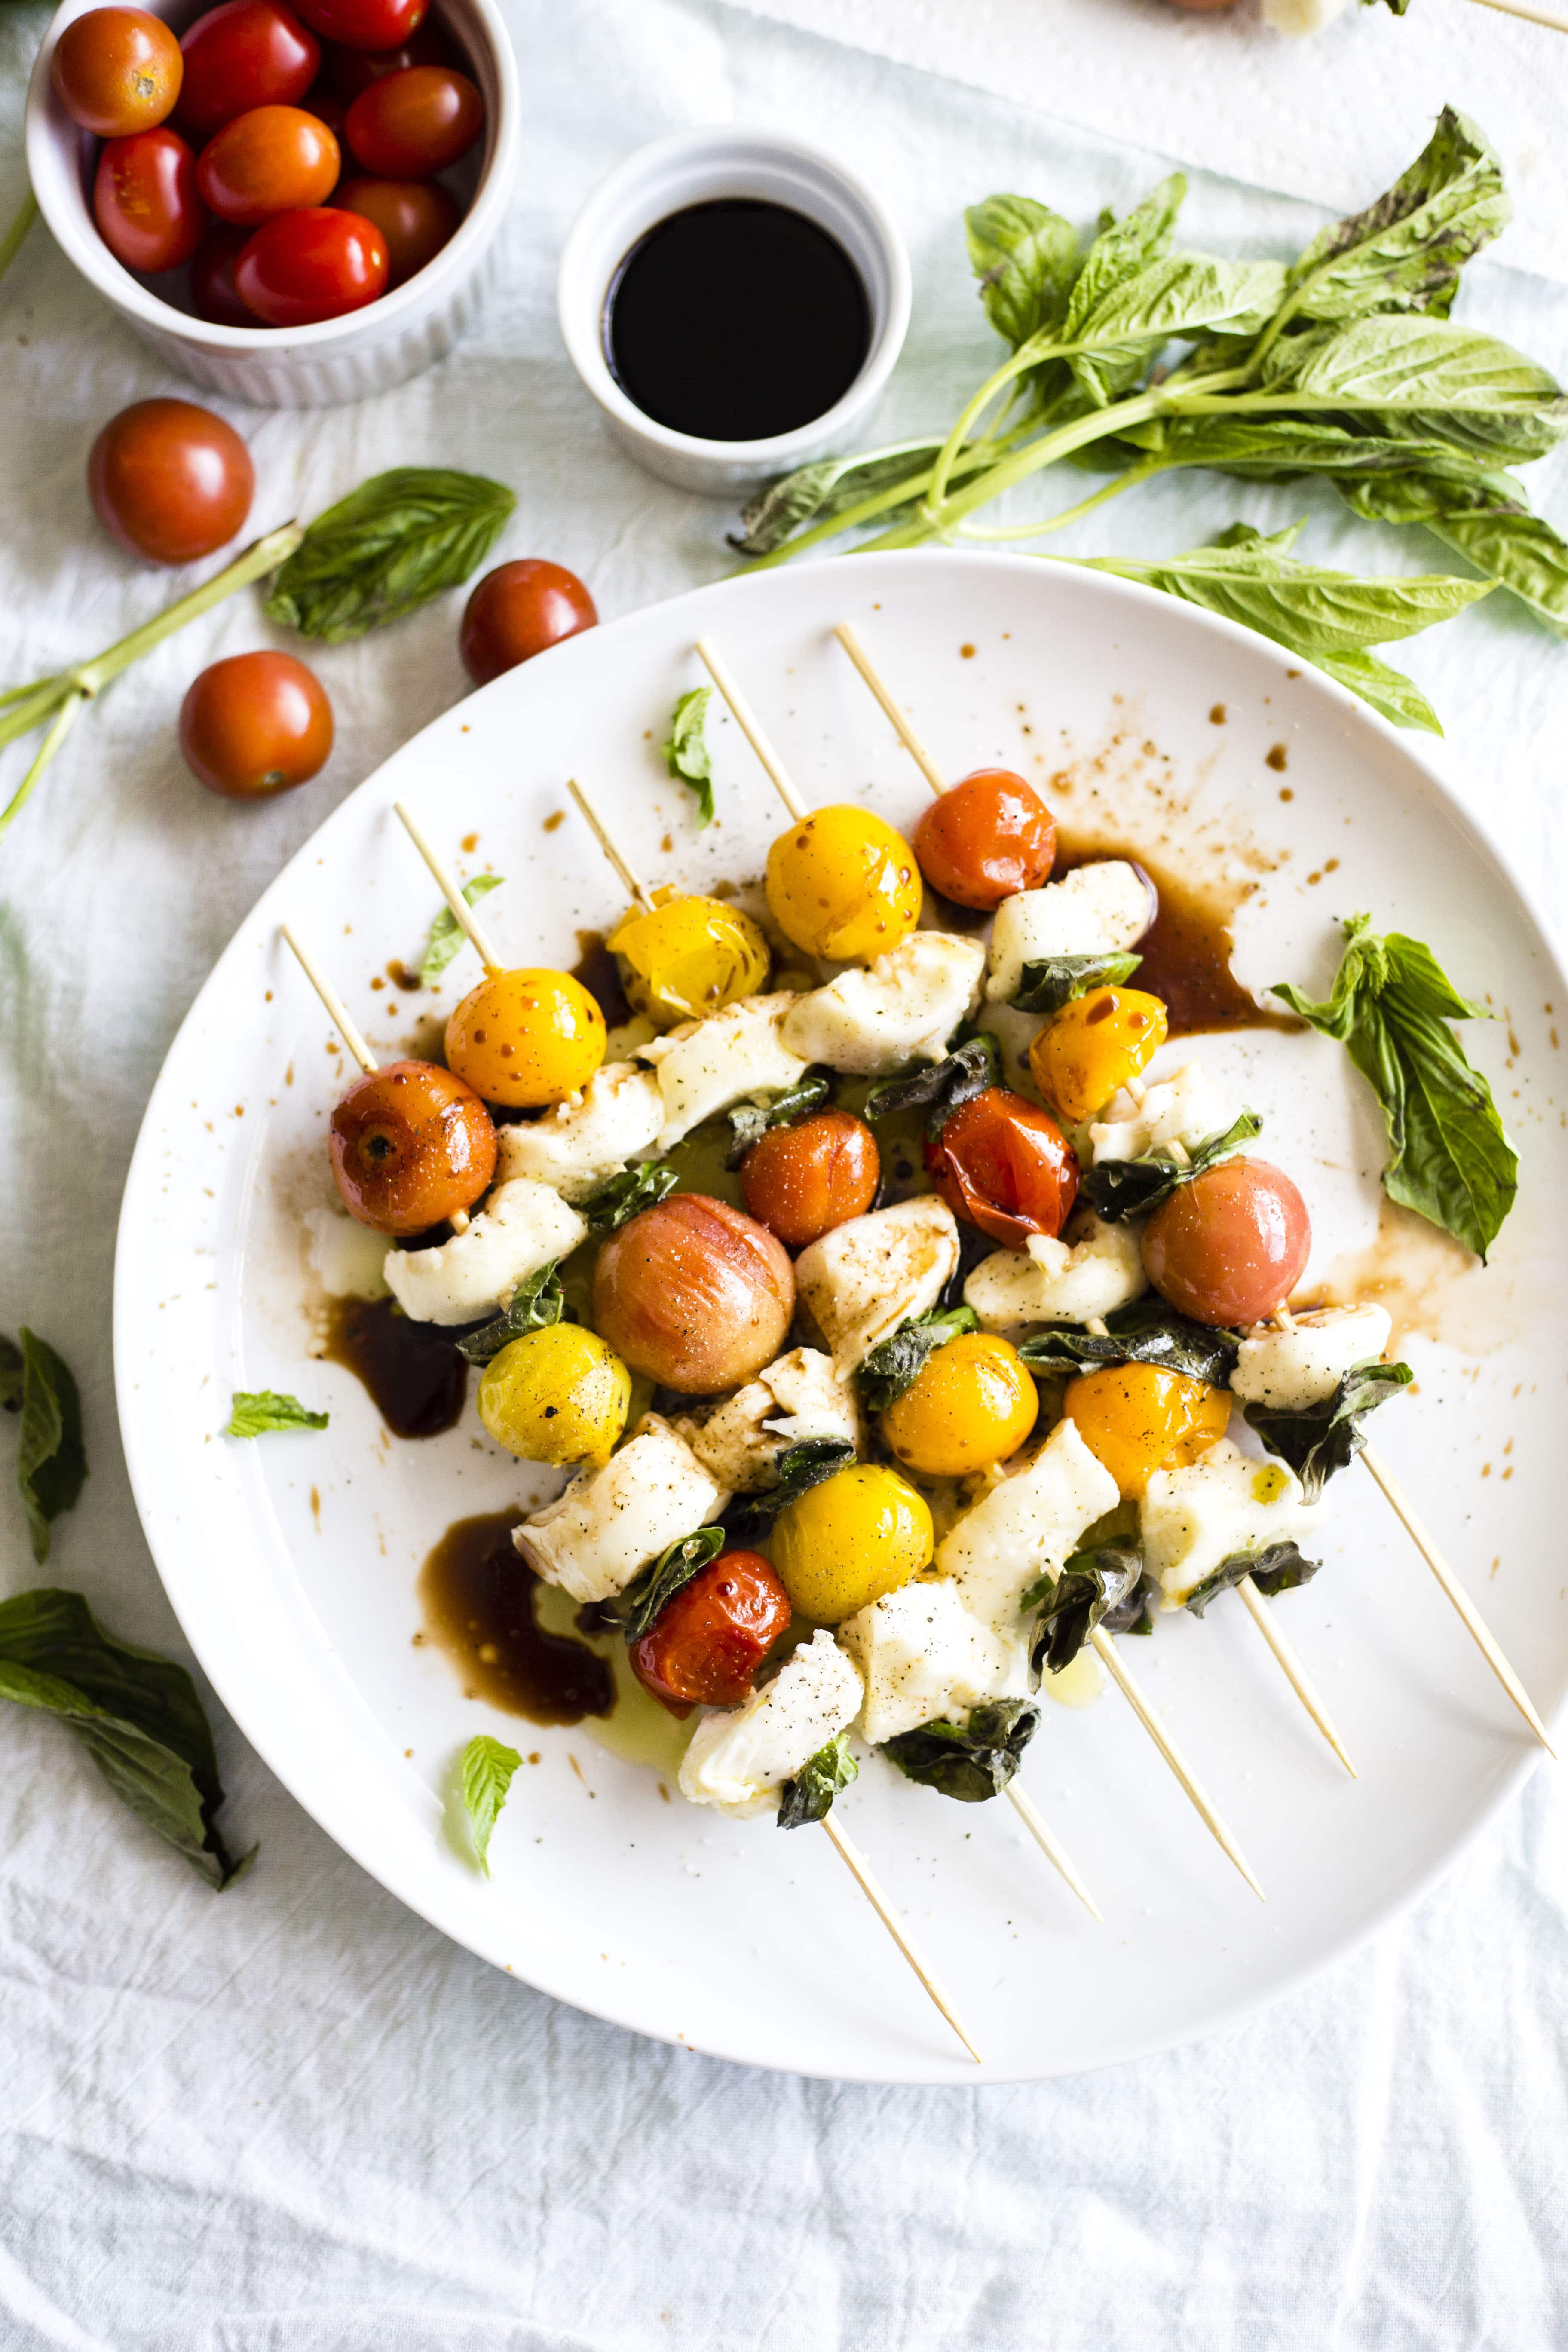 Baked Caprese Kebabs | No grill? No problem! These caprese kebabs are made in the oven and are a super simple appetizer!